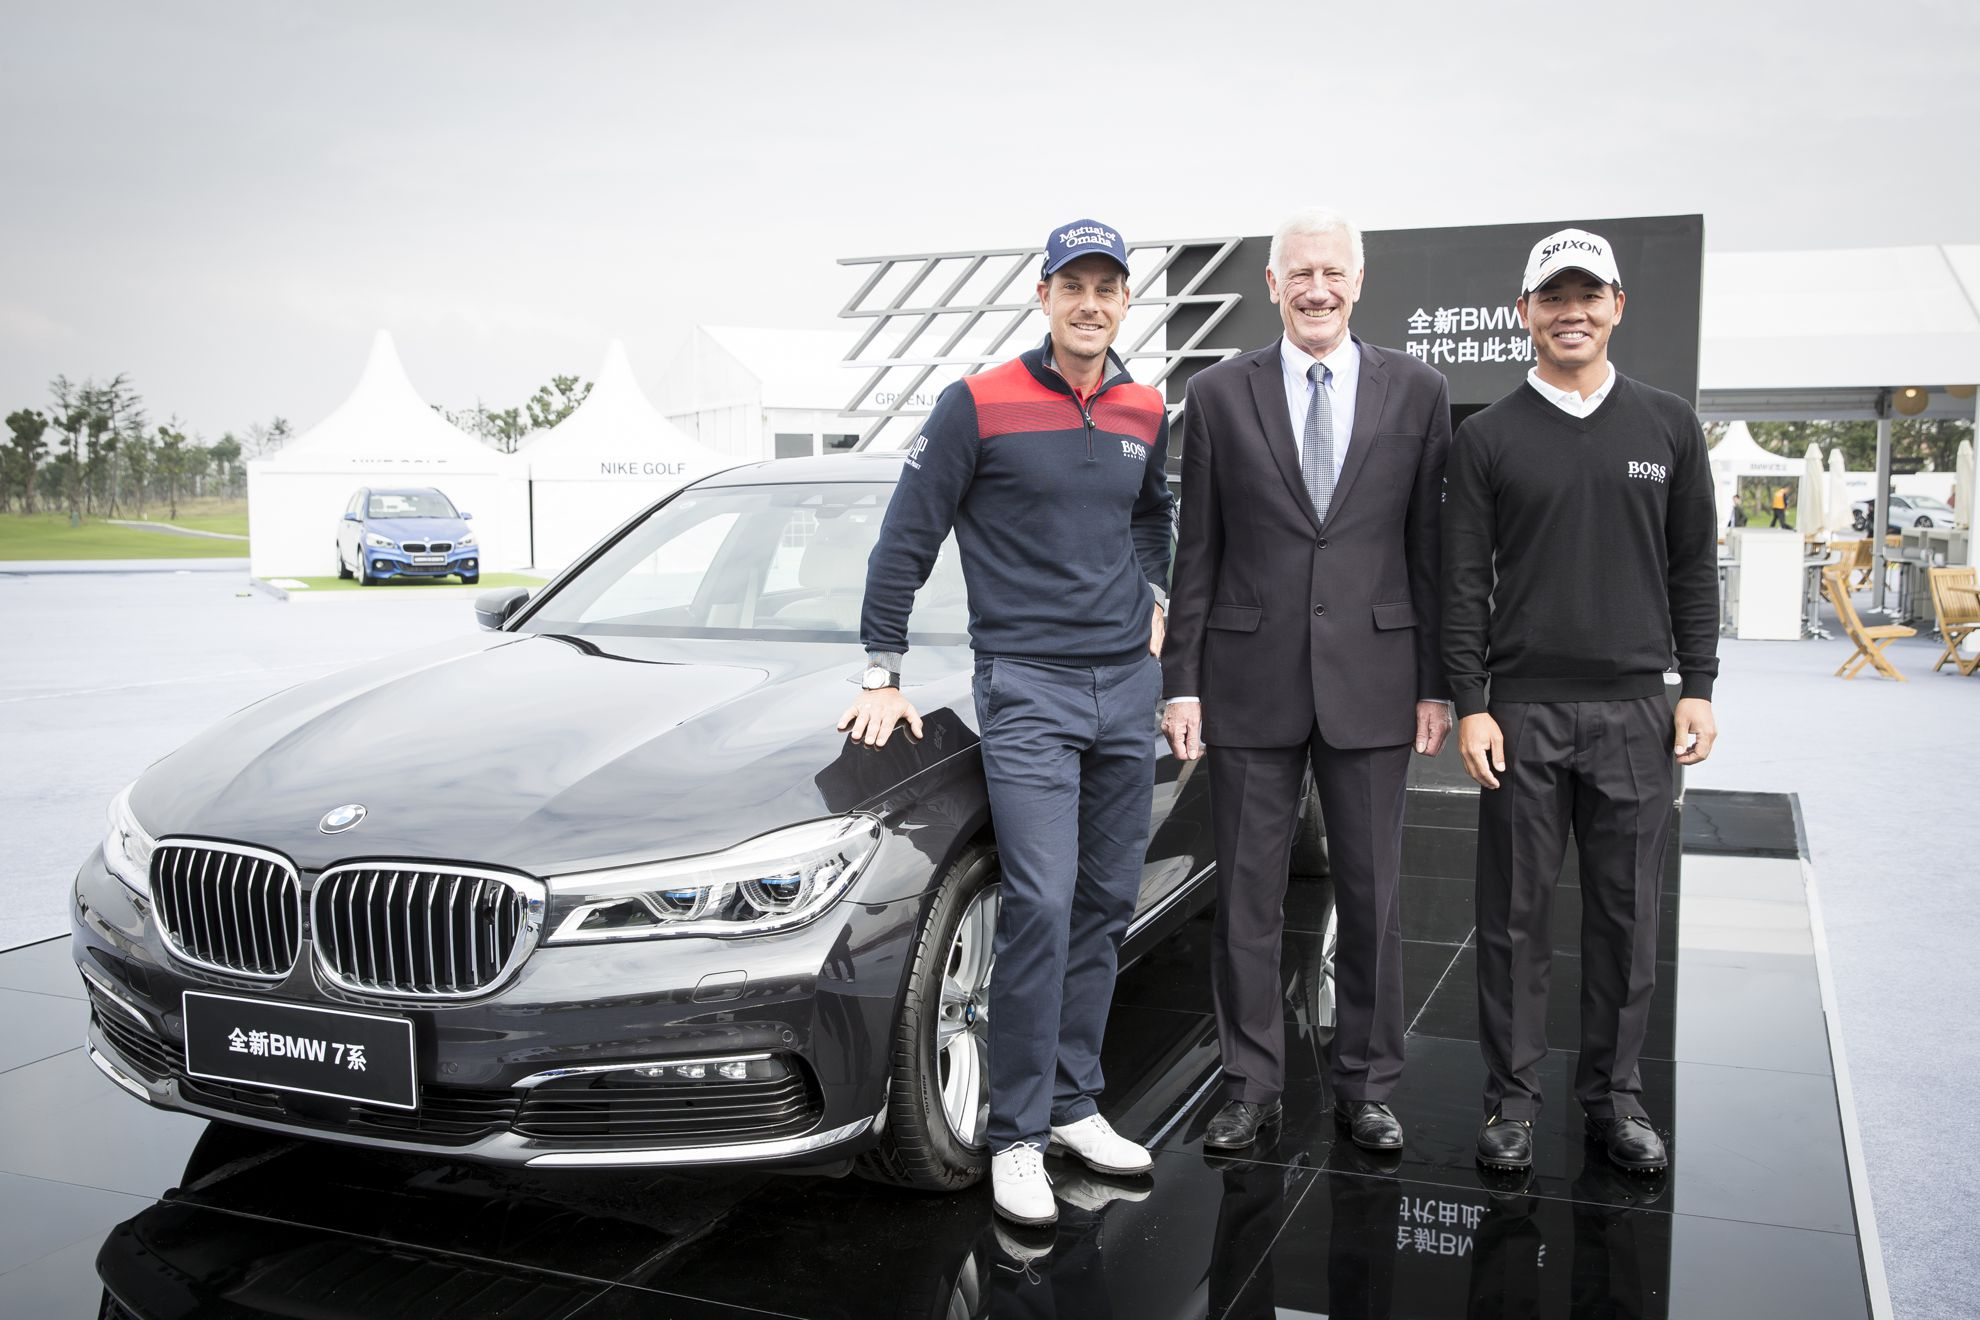 BMW-European-Masters-Golf-Tournament